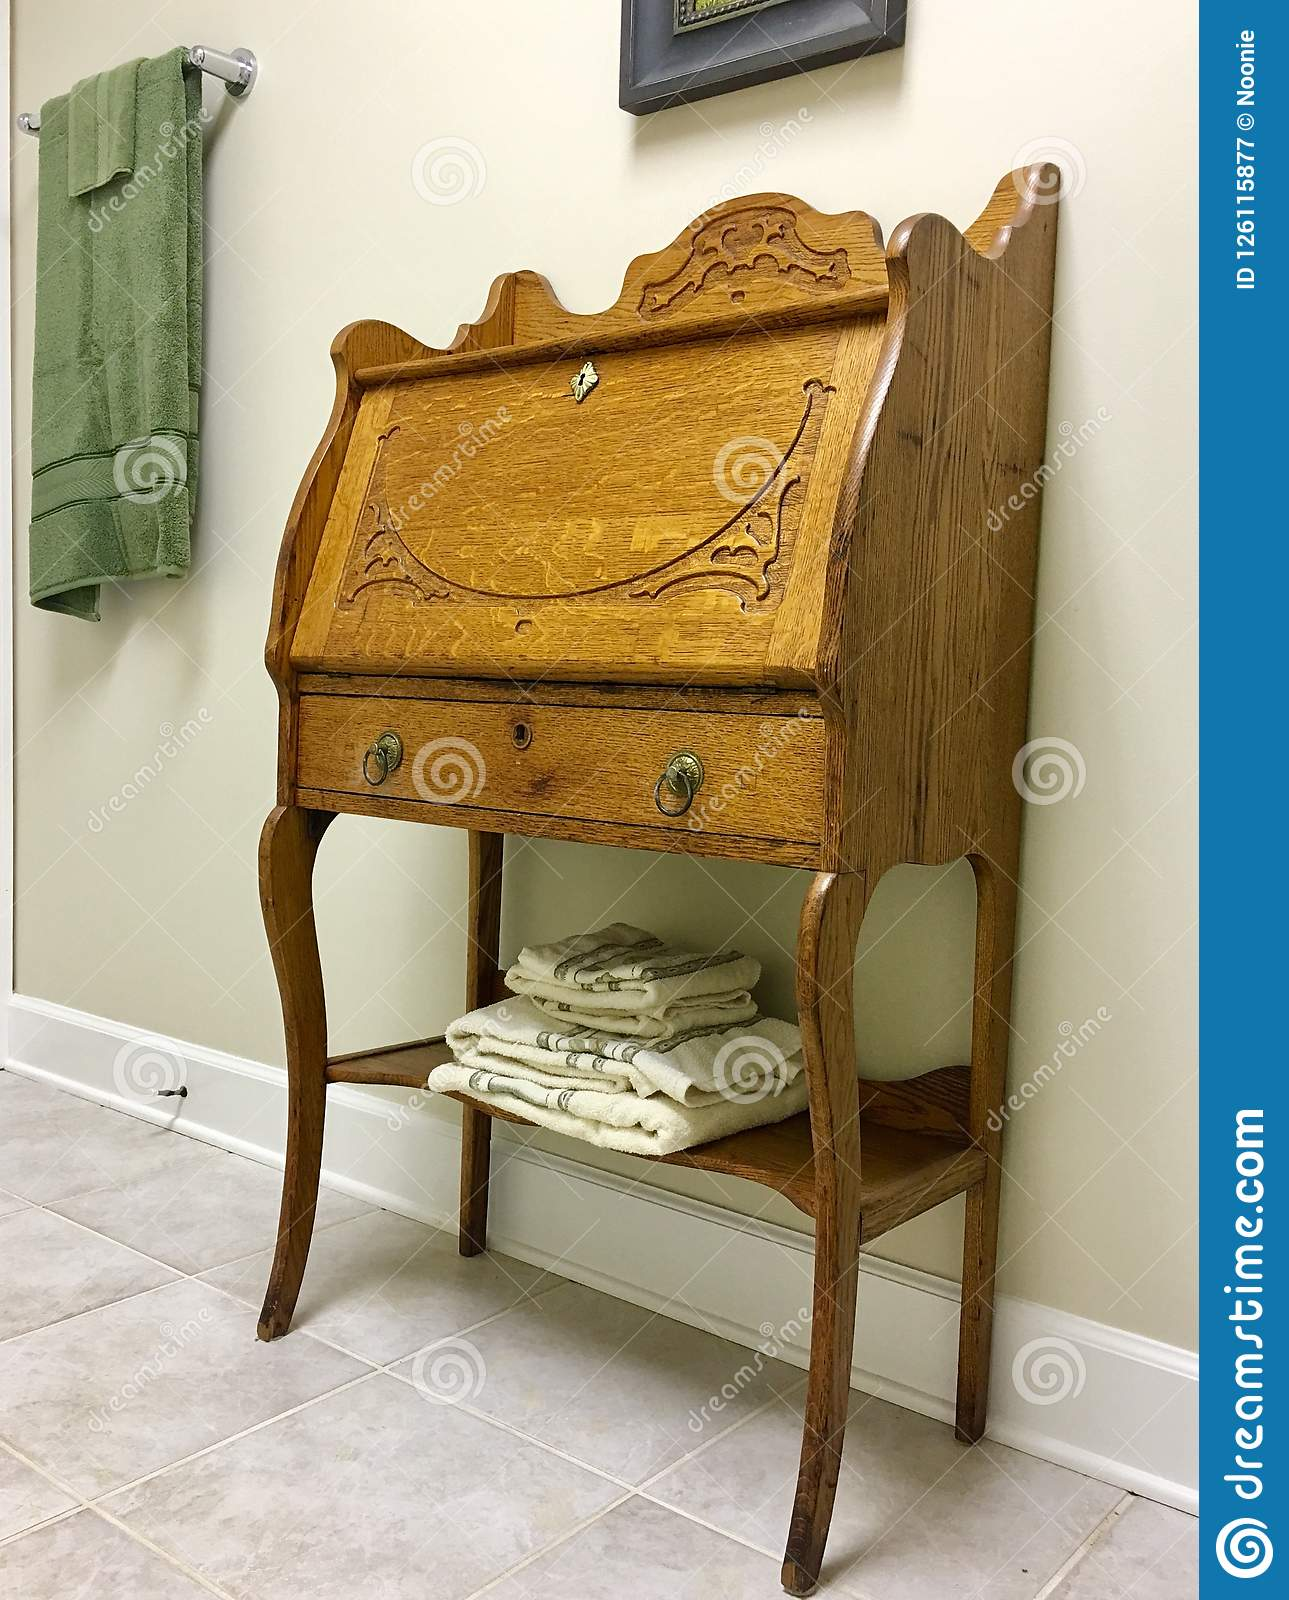 Repurposed Furniture In Bath Stock Image Image Of Interior Wood